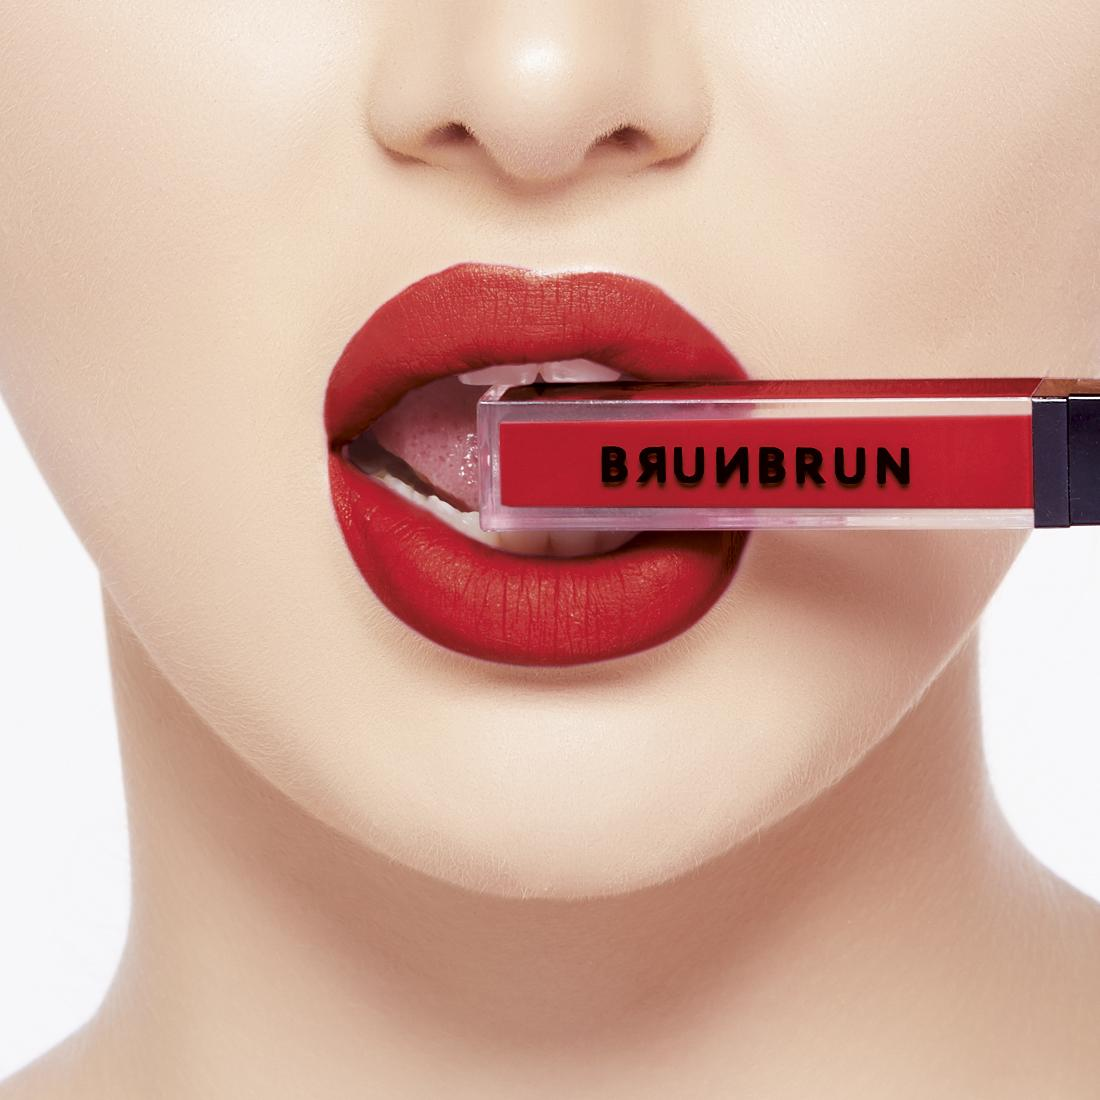 BRUNBRUN PARIS MELTED MATTE LIP COLOR ARIA